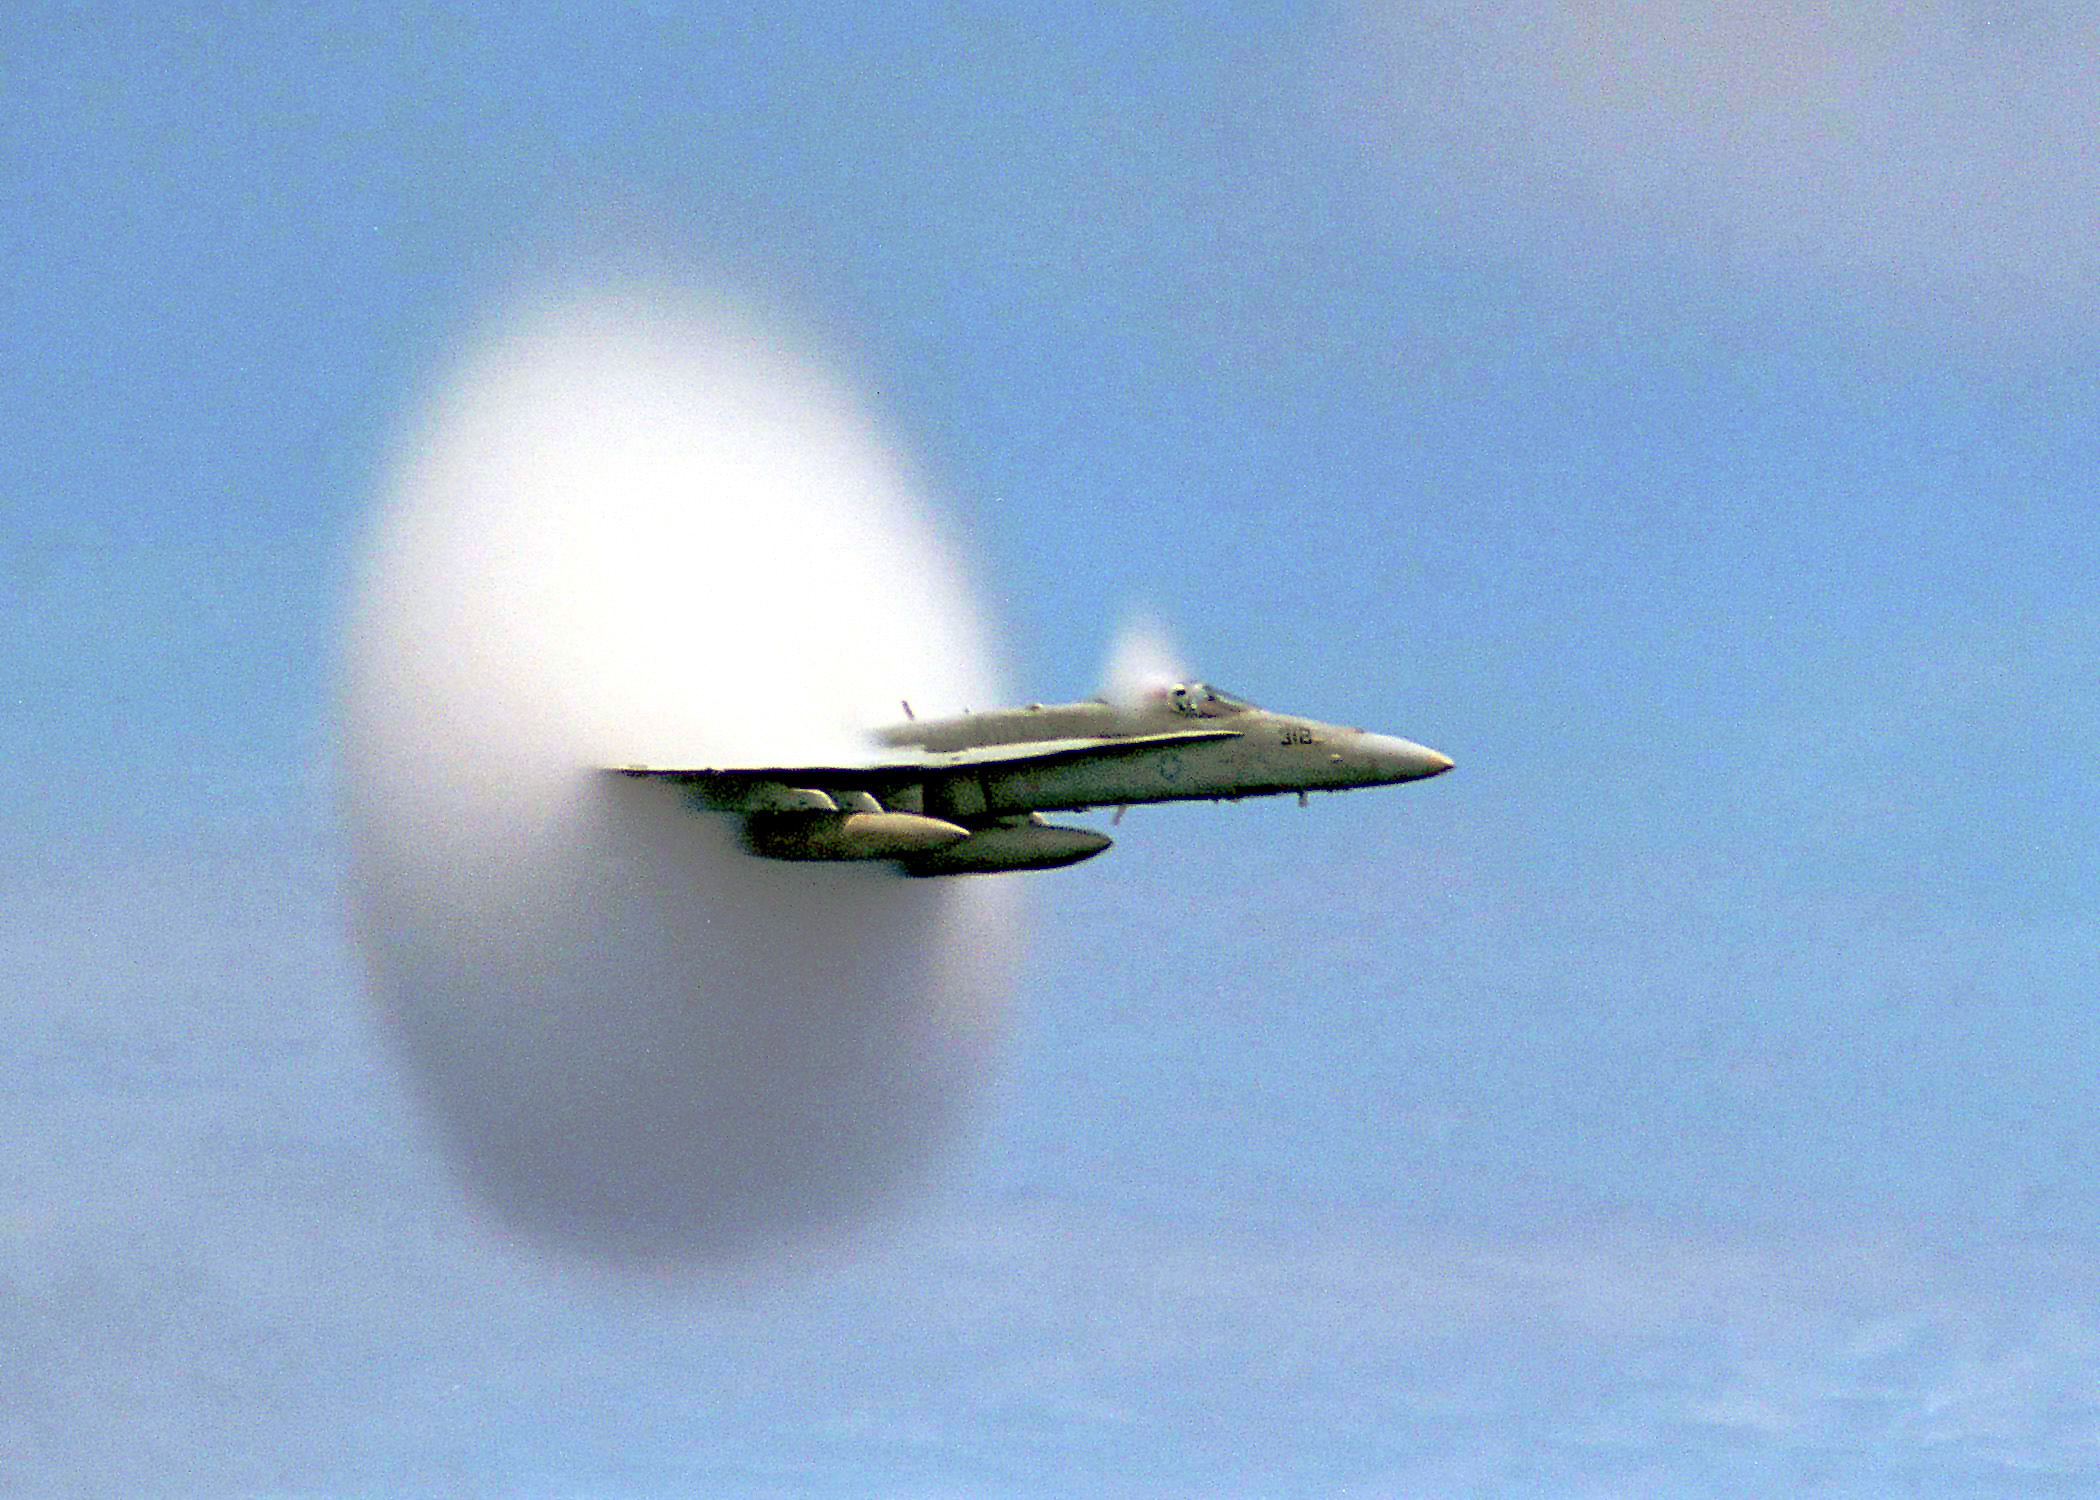 FA 18 Hornet breaking sound barrier 7 July 1999